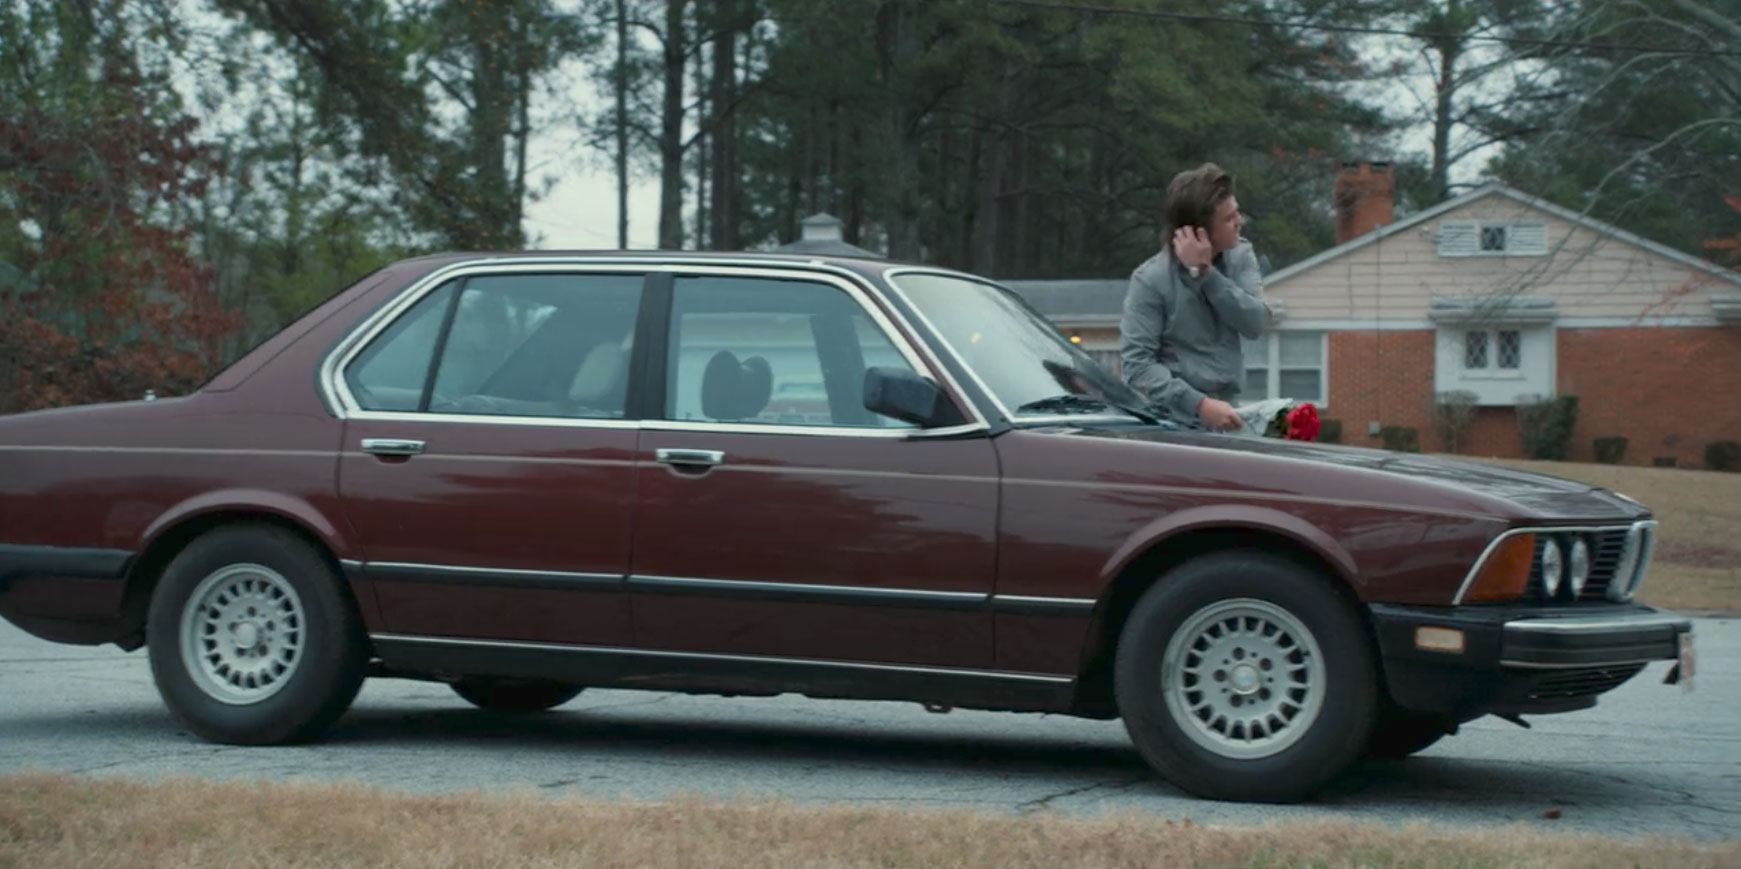 1980 BMW 733i in Stranger THings